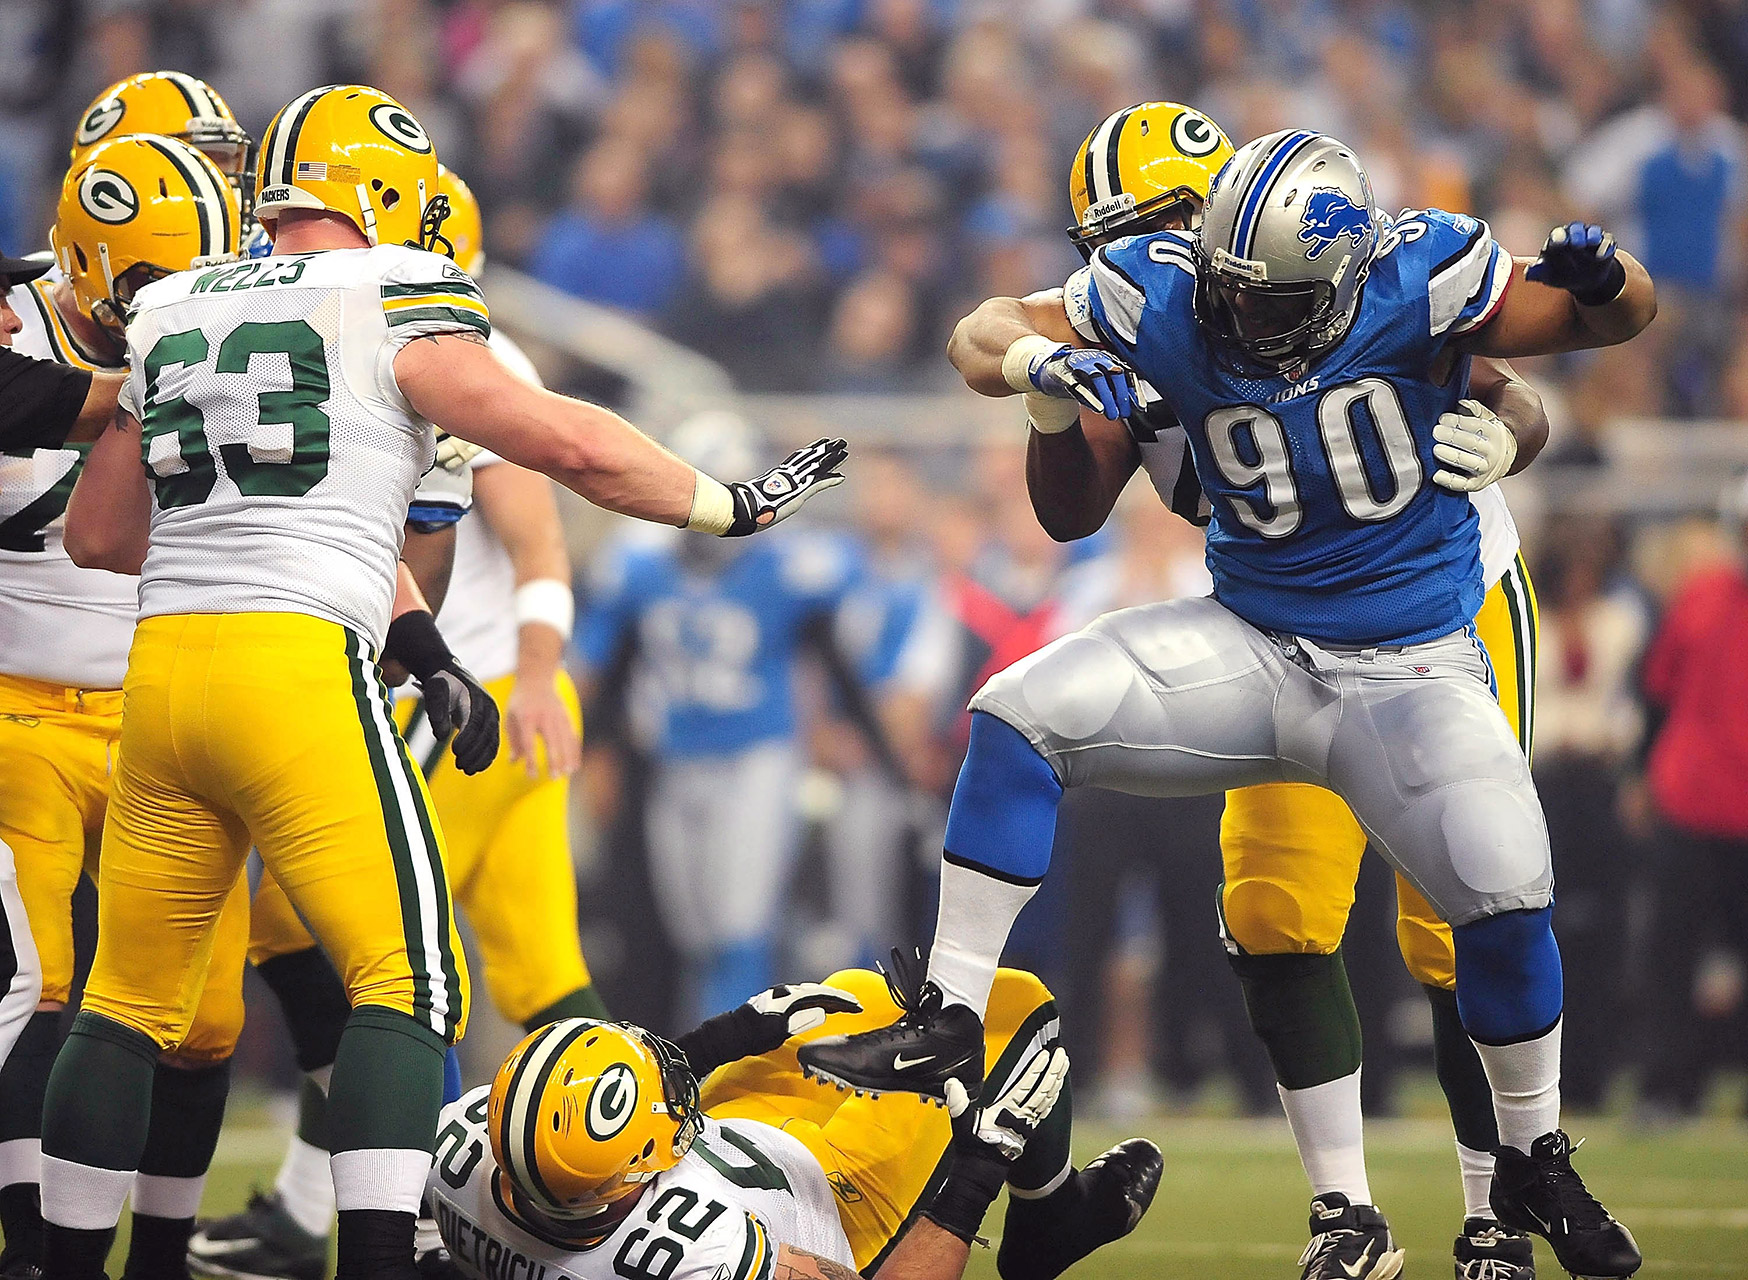 Ndamukong Suh and Evan Dietrich-Smith